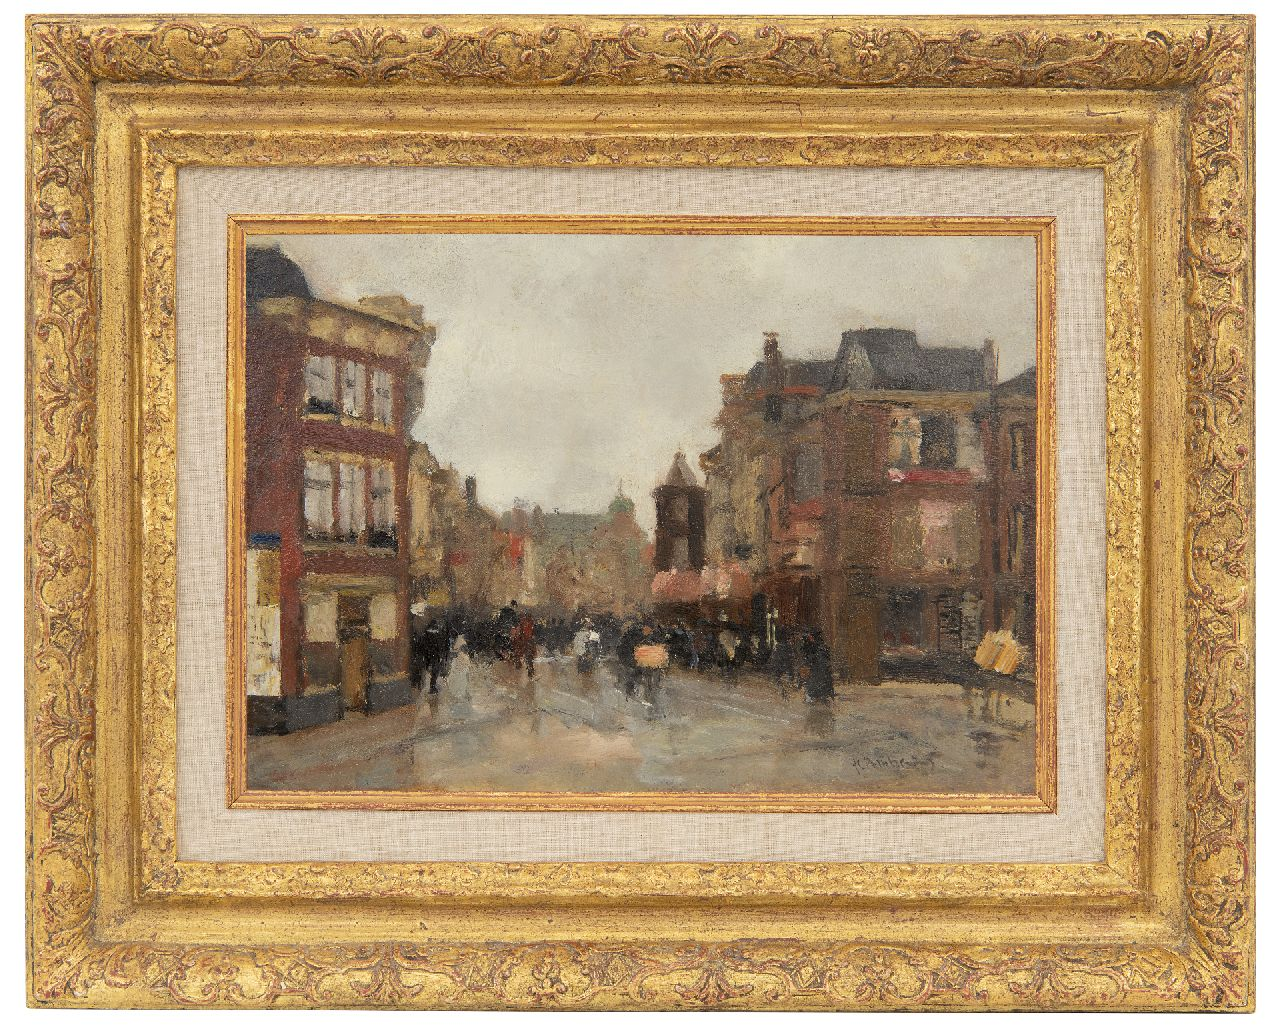 Arntzenius P.F.N.J.  | Pieter Florentius Nicolaas Jacobus 'Floris' Arntzenius | Paintings offered for sale | A view of the Wagenstraat, The Hague, oil on panel 20.6 x 29.0 cm, signed l.r.